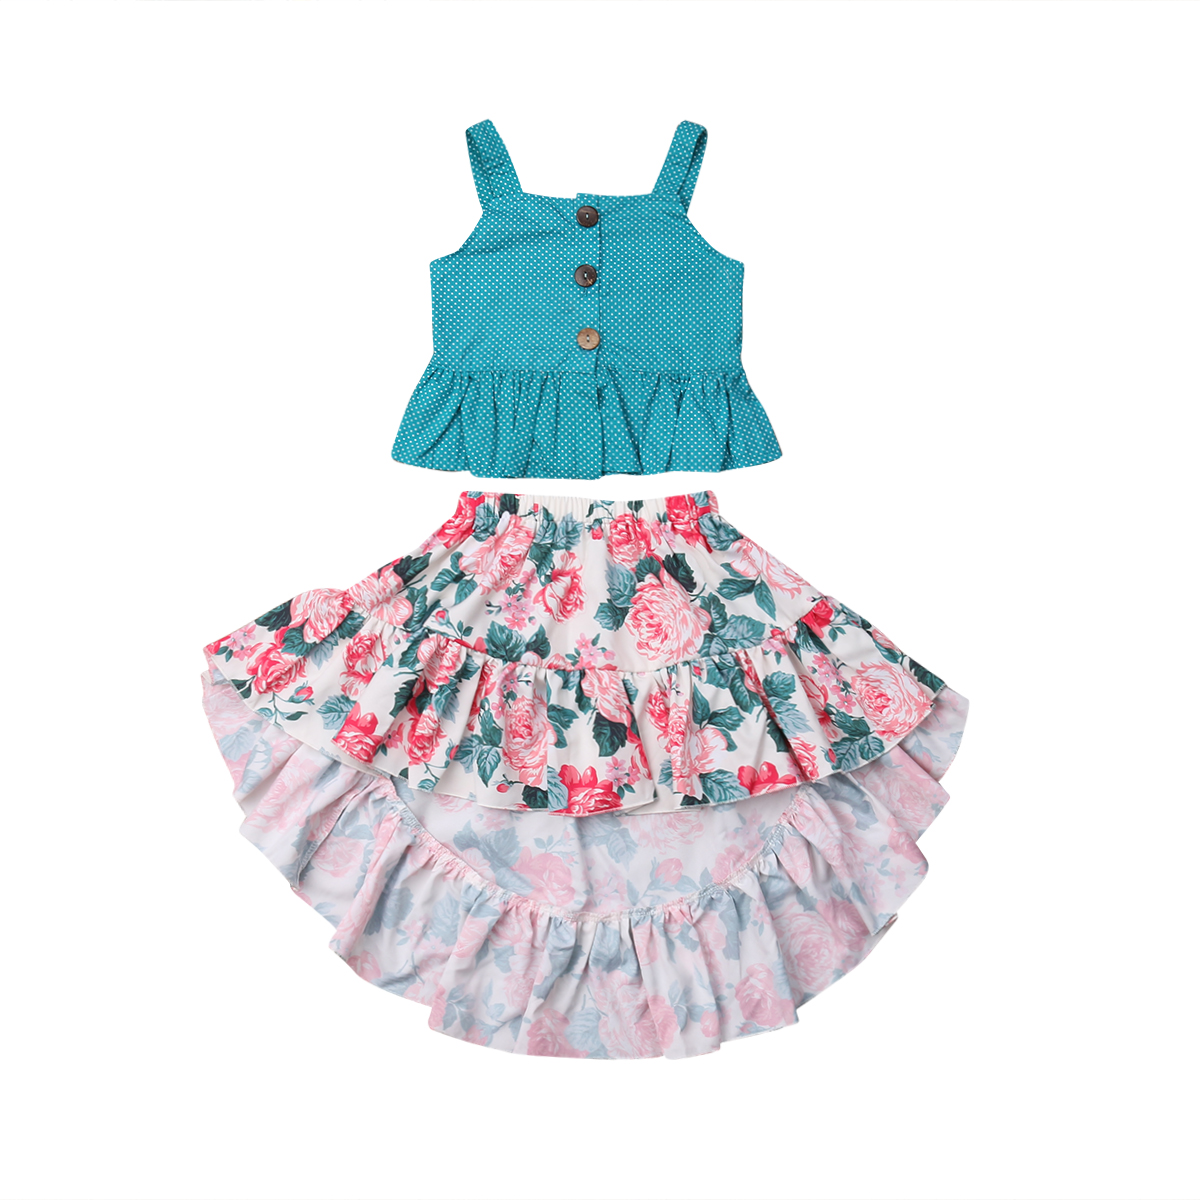 Little Girls Summer Floral Clothes Sets Babies Girl Party Tank Tops+Skirt Long Maxi Skirts for Toddler Baby Kids 2-7T